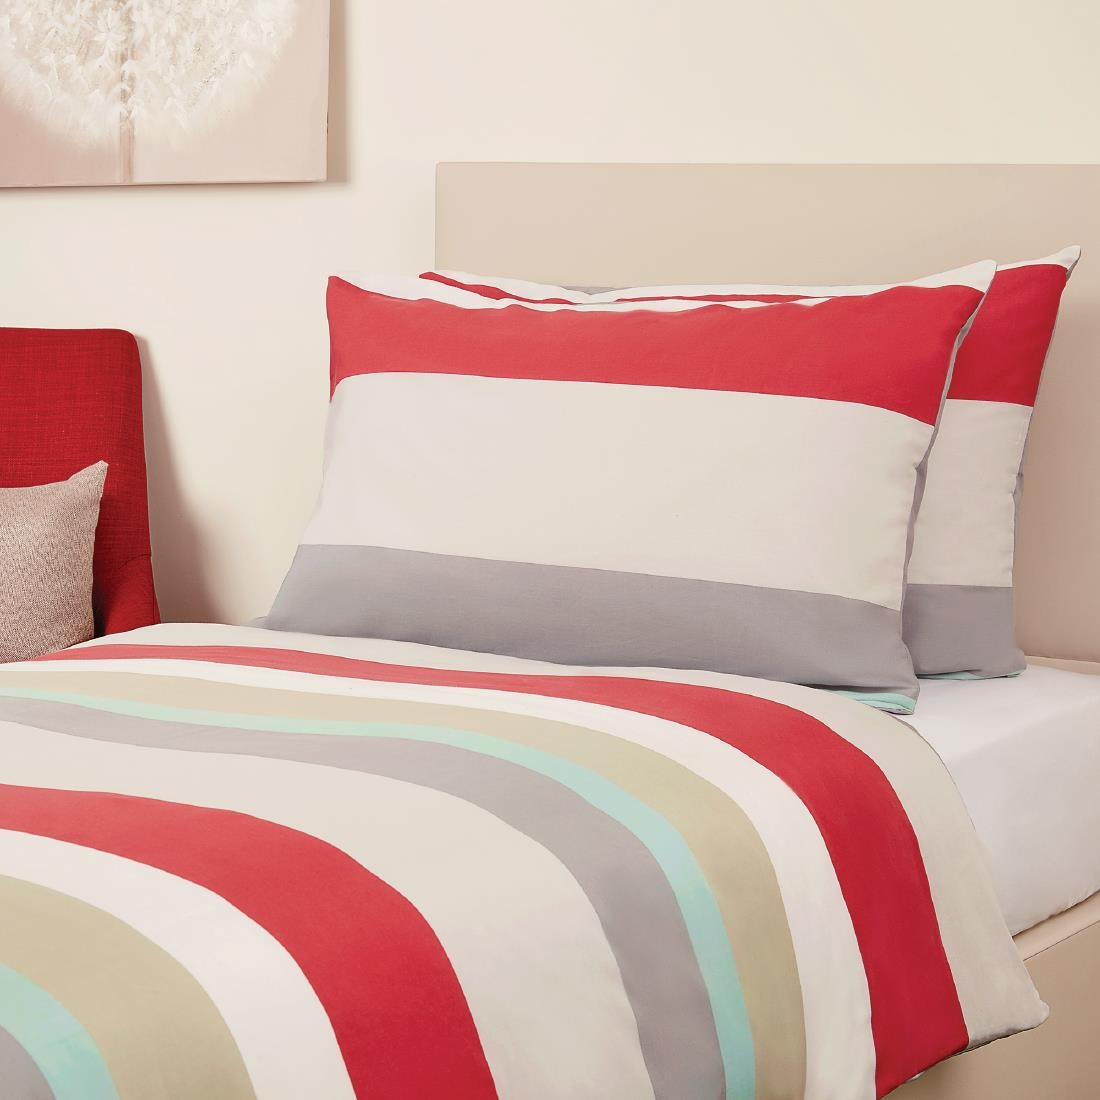 Click to view product details and reviews for Mitre Essentials Skye Double Bedding Set Red.